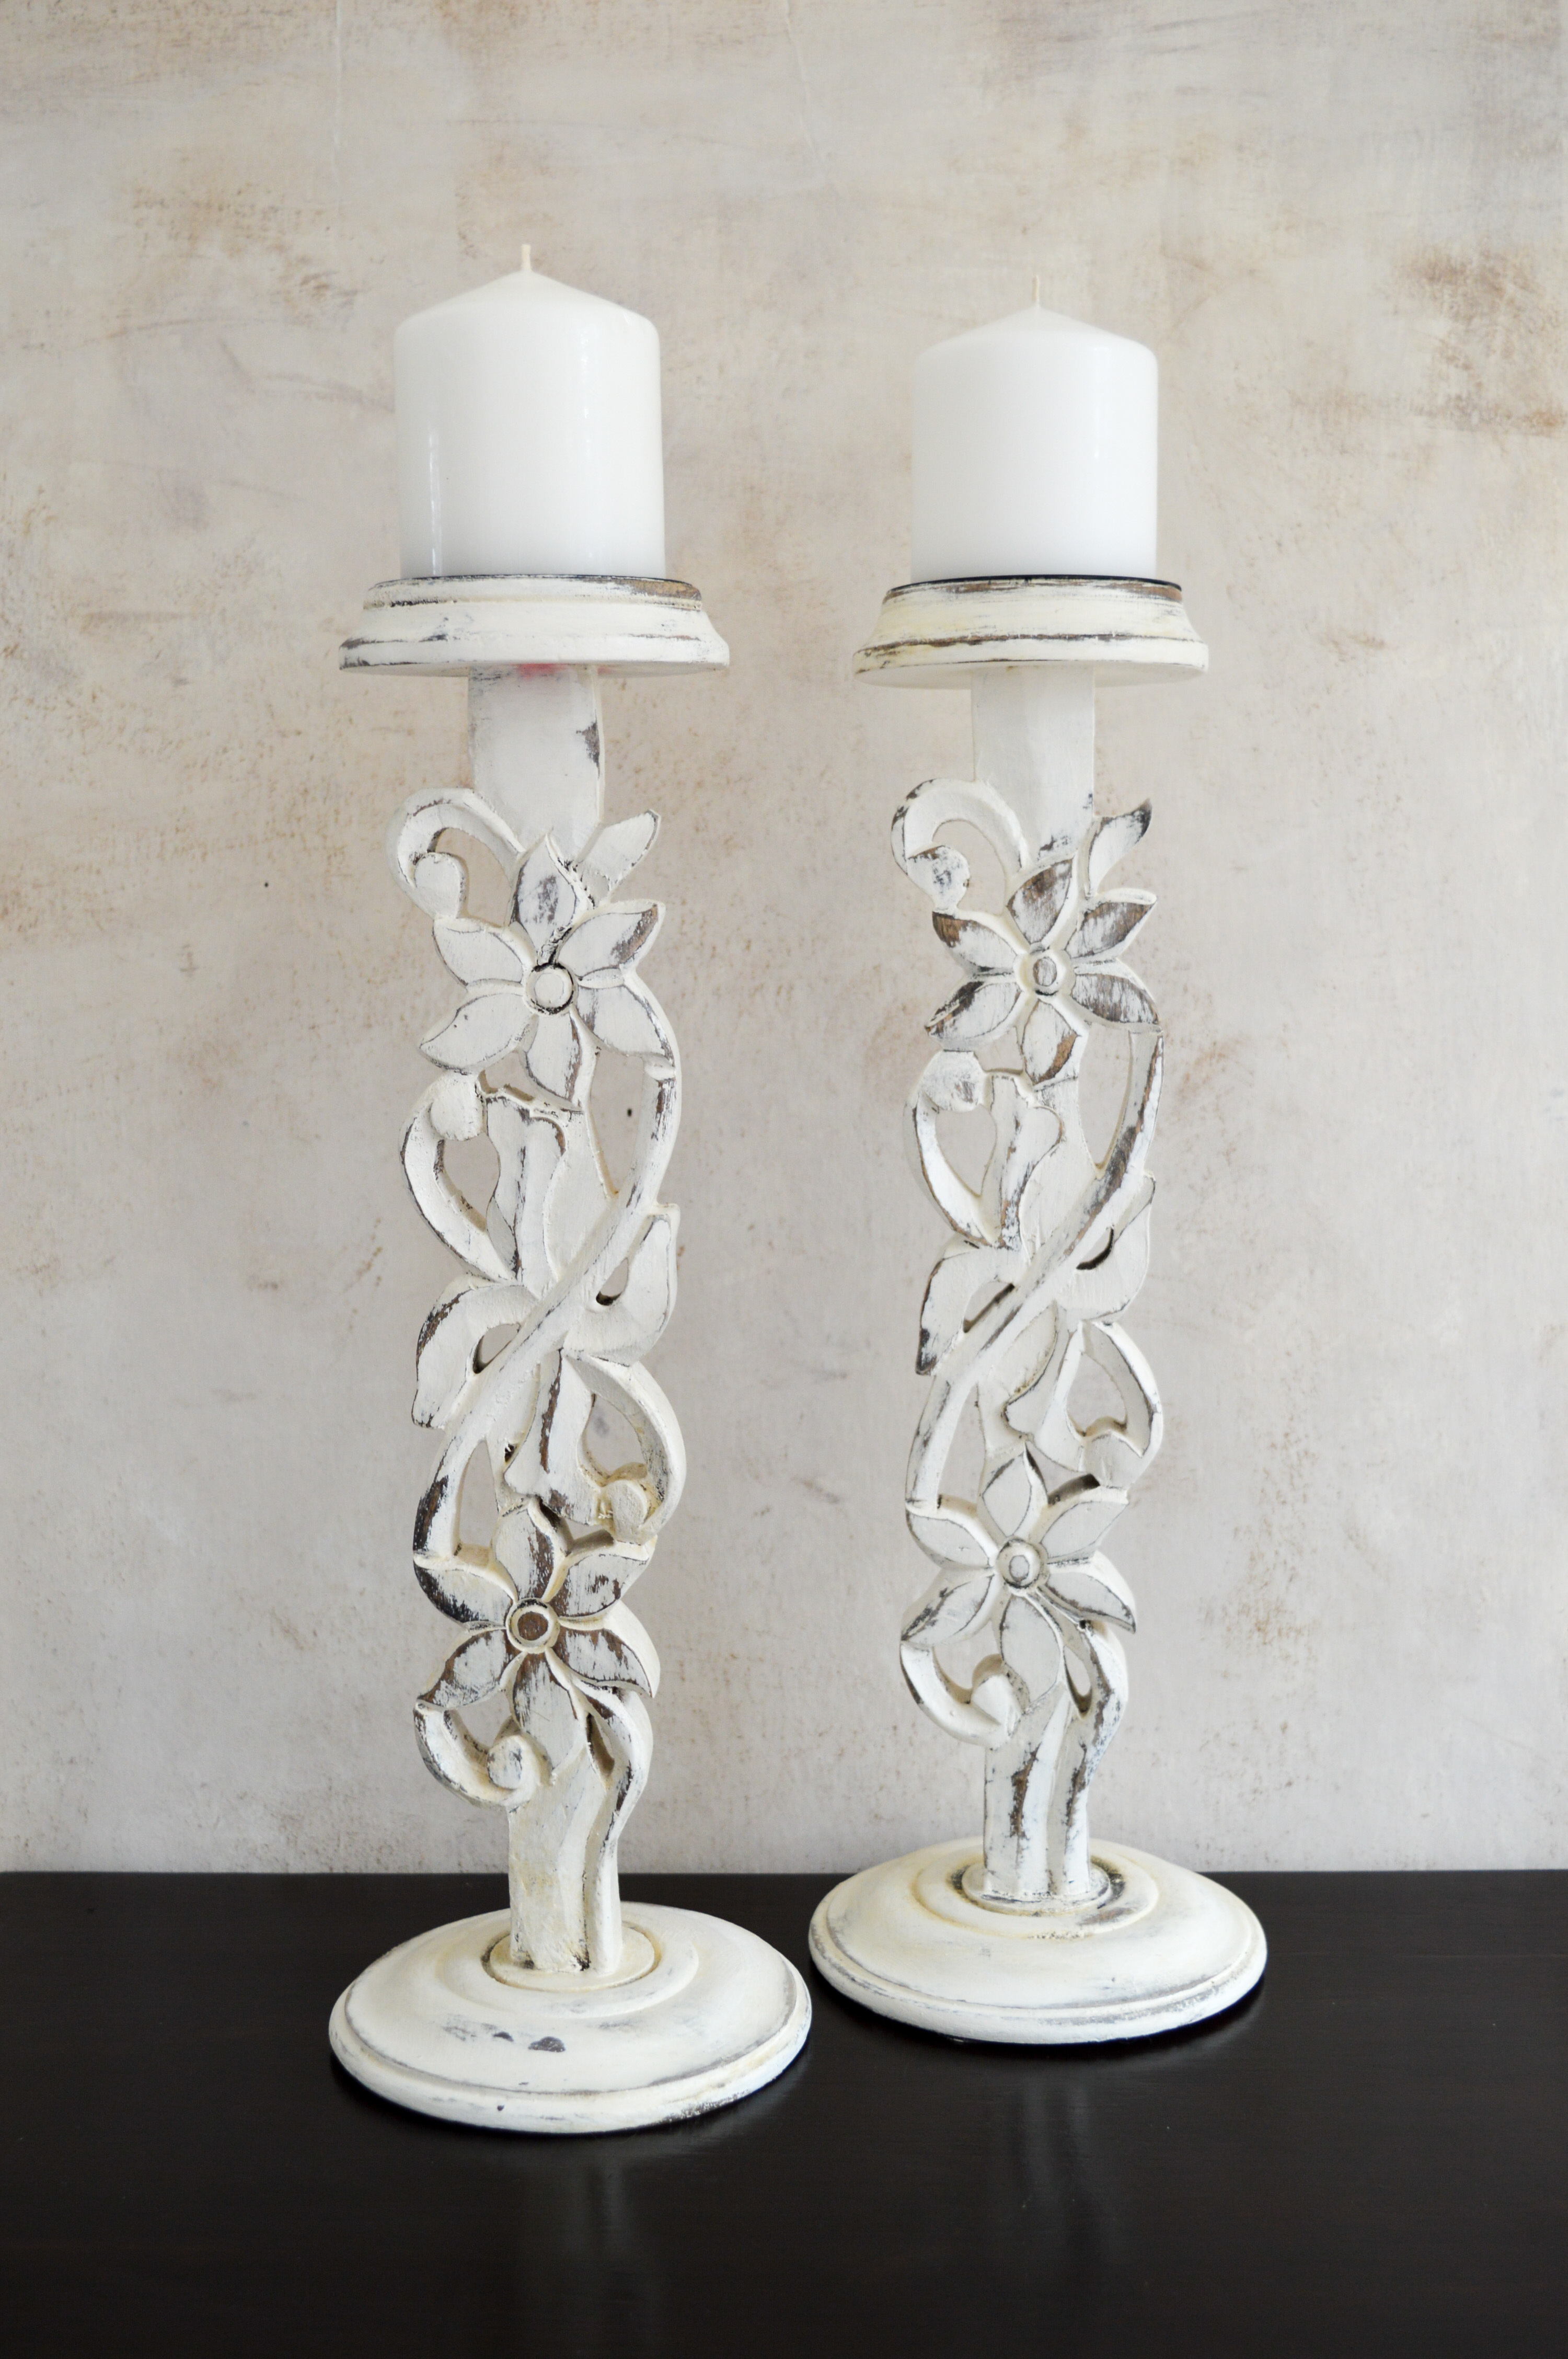 Pair Of Carved Candlesticks Holders Tall Solid Wood French Shabby Chic Wood Candle Holder White Washed Hand Painted Centrepiece Table La Maison Shabby Chic Vintage Vinterior